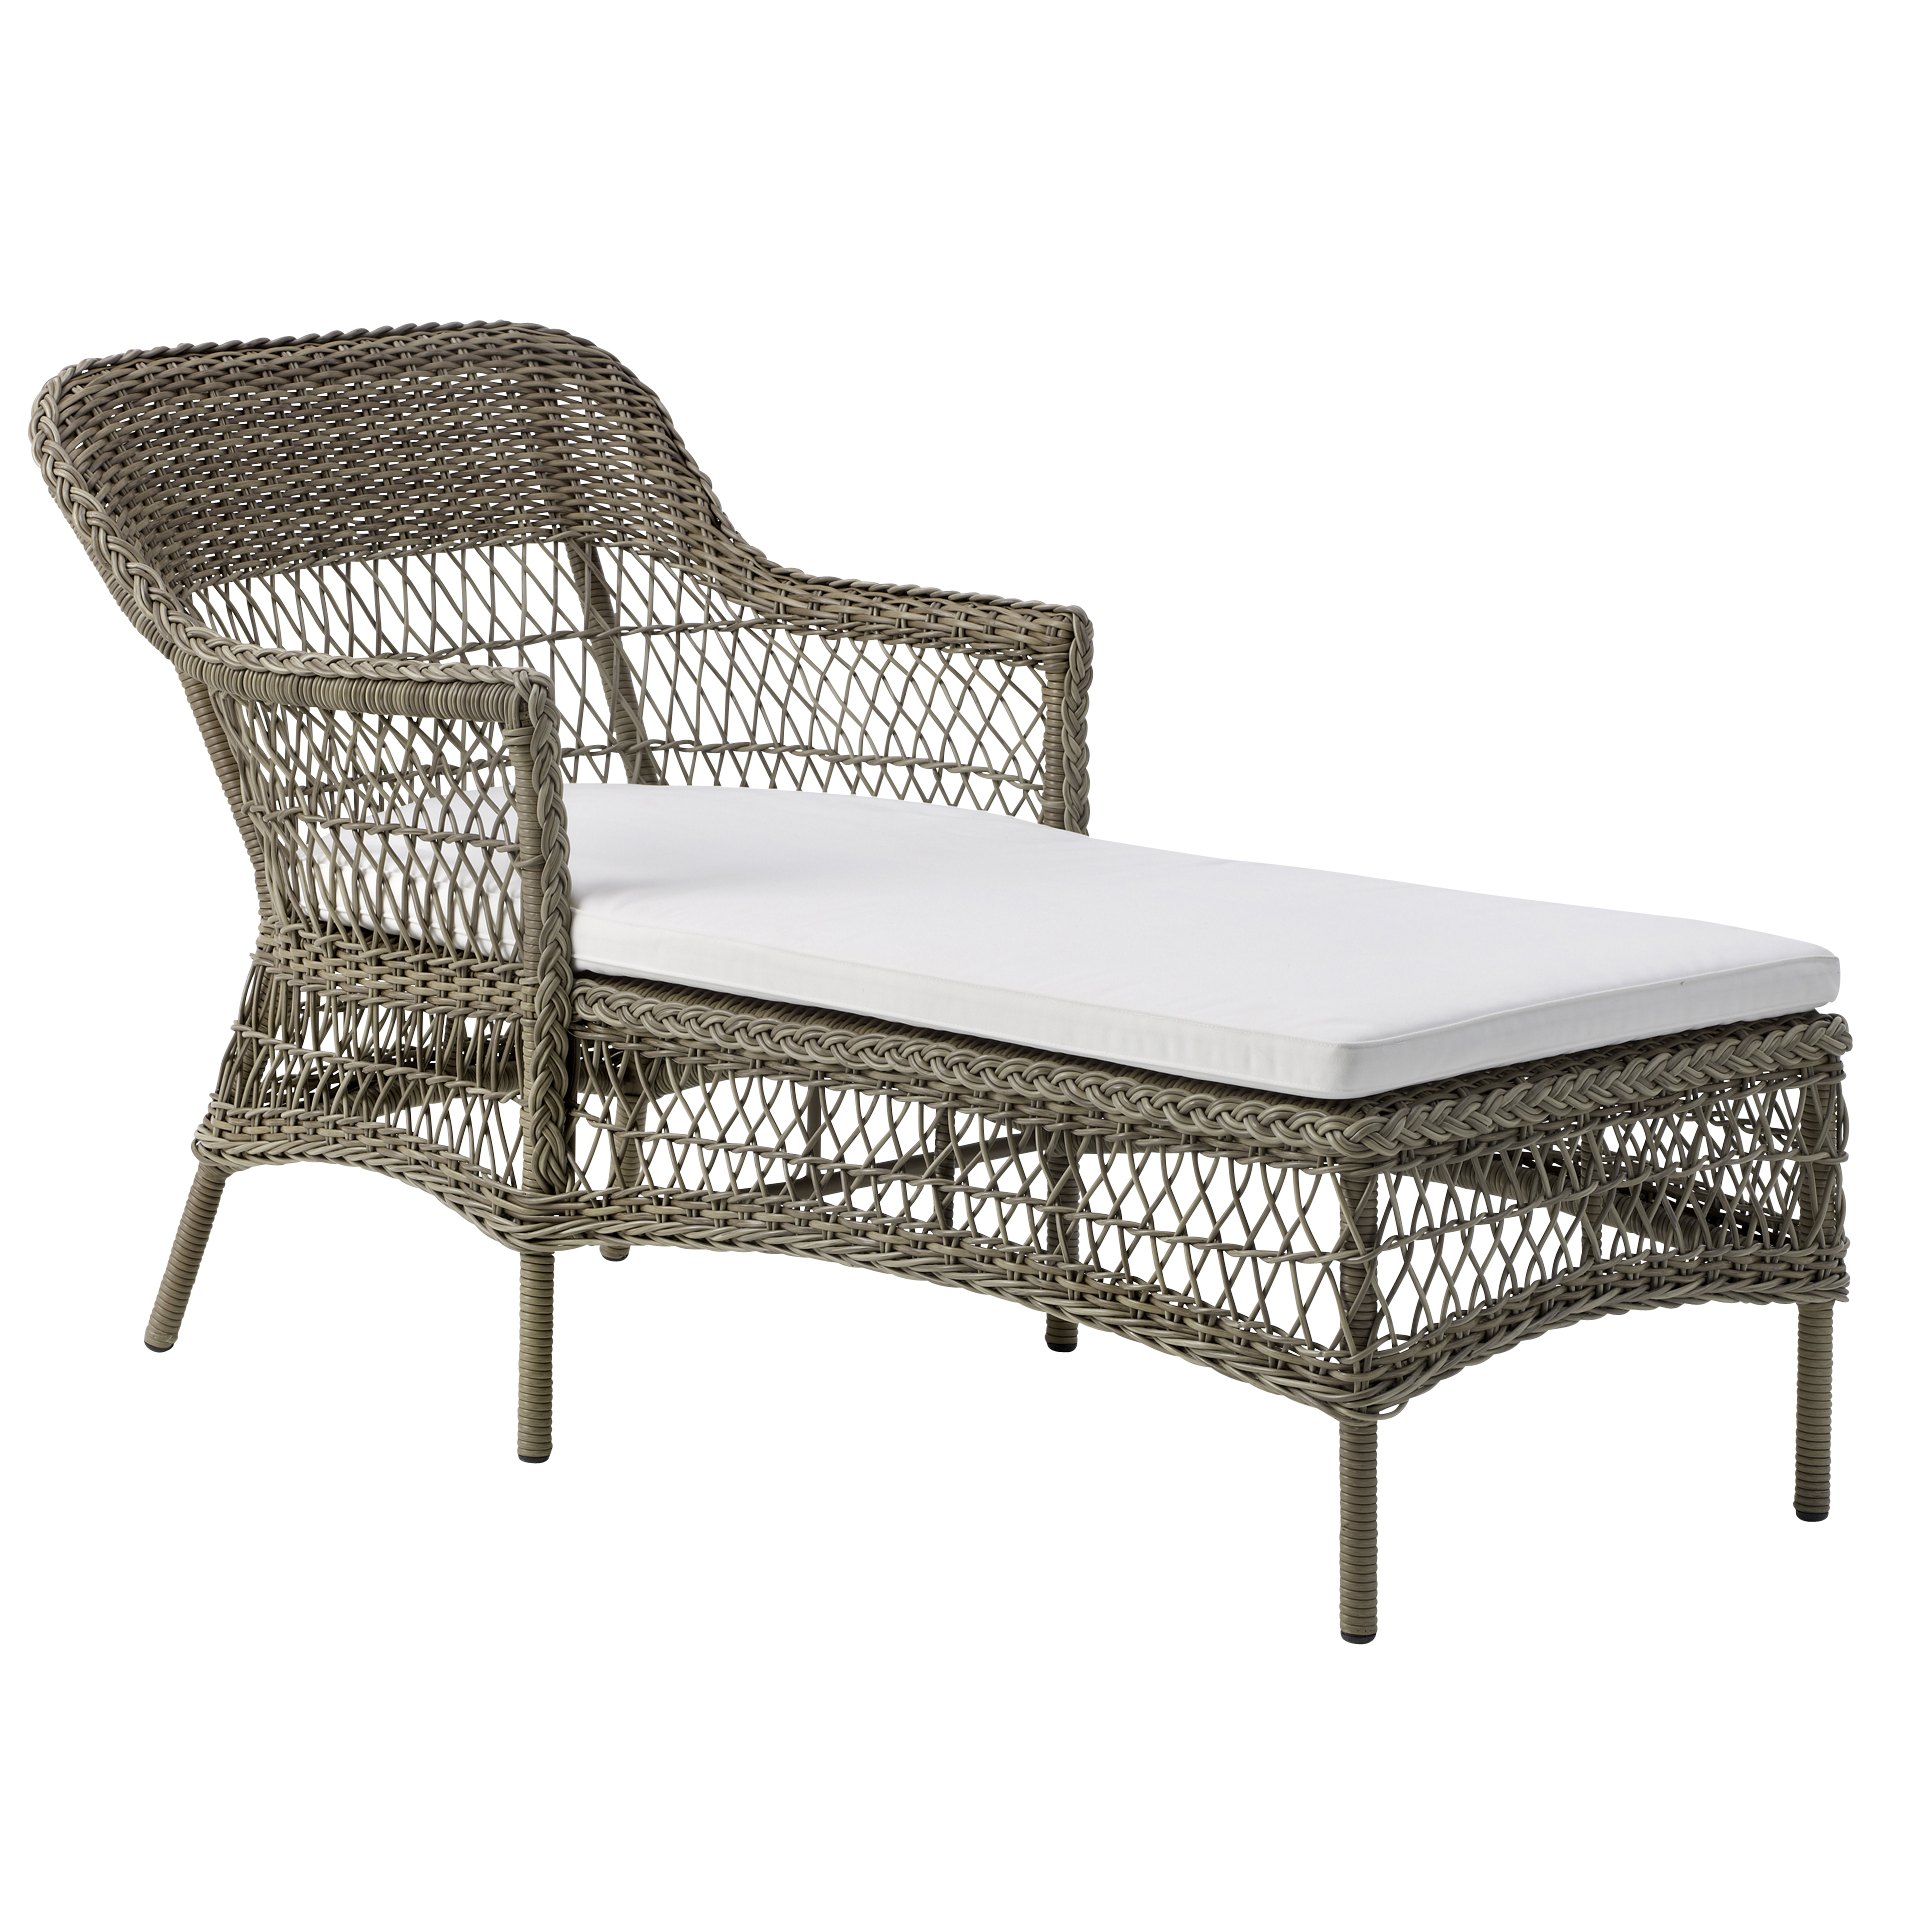 Sika Design Olivia Chaise Lounge Chair